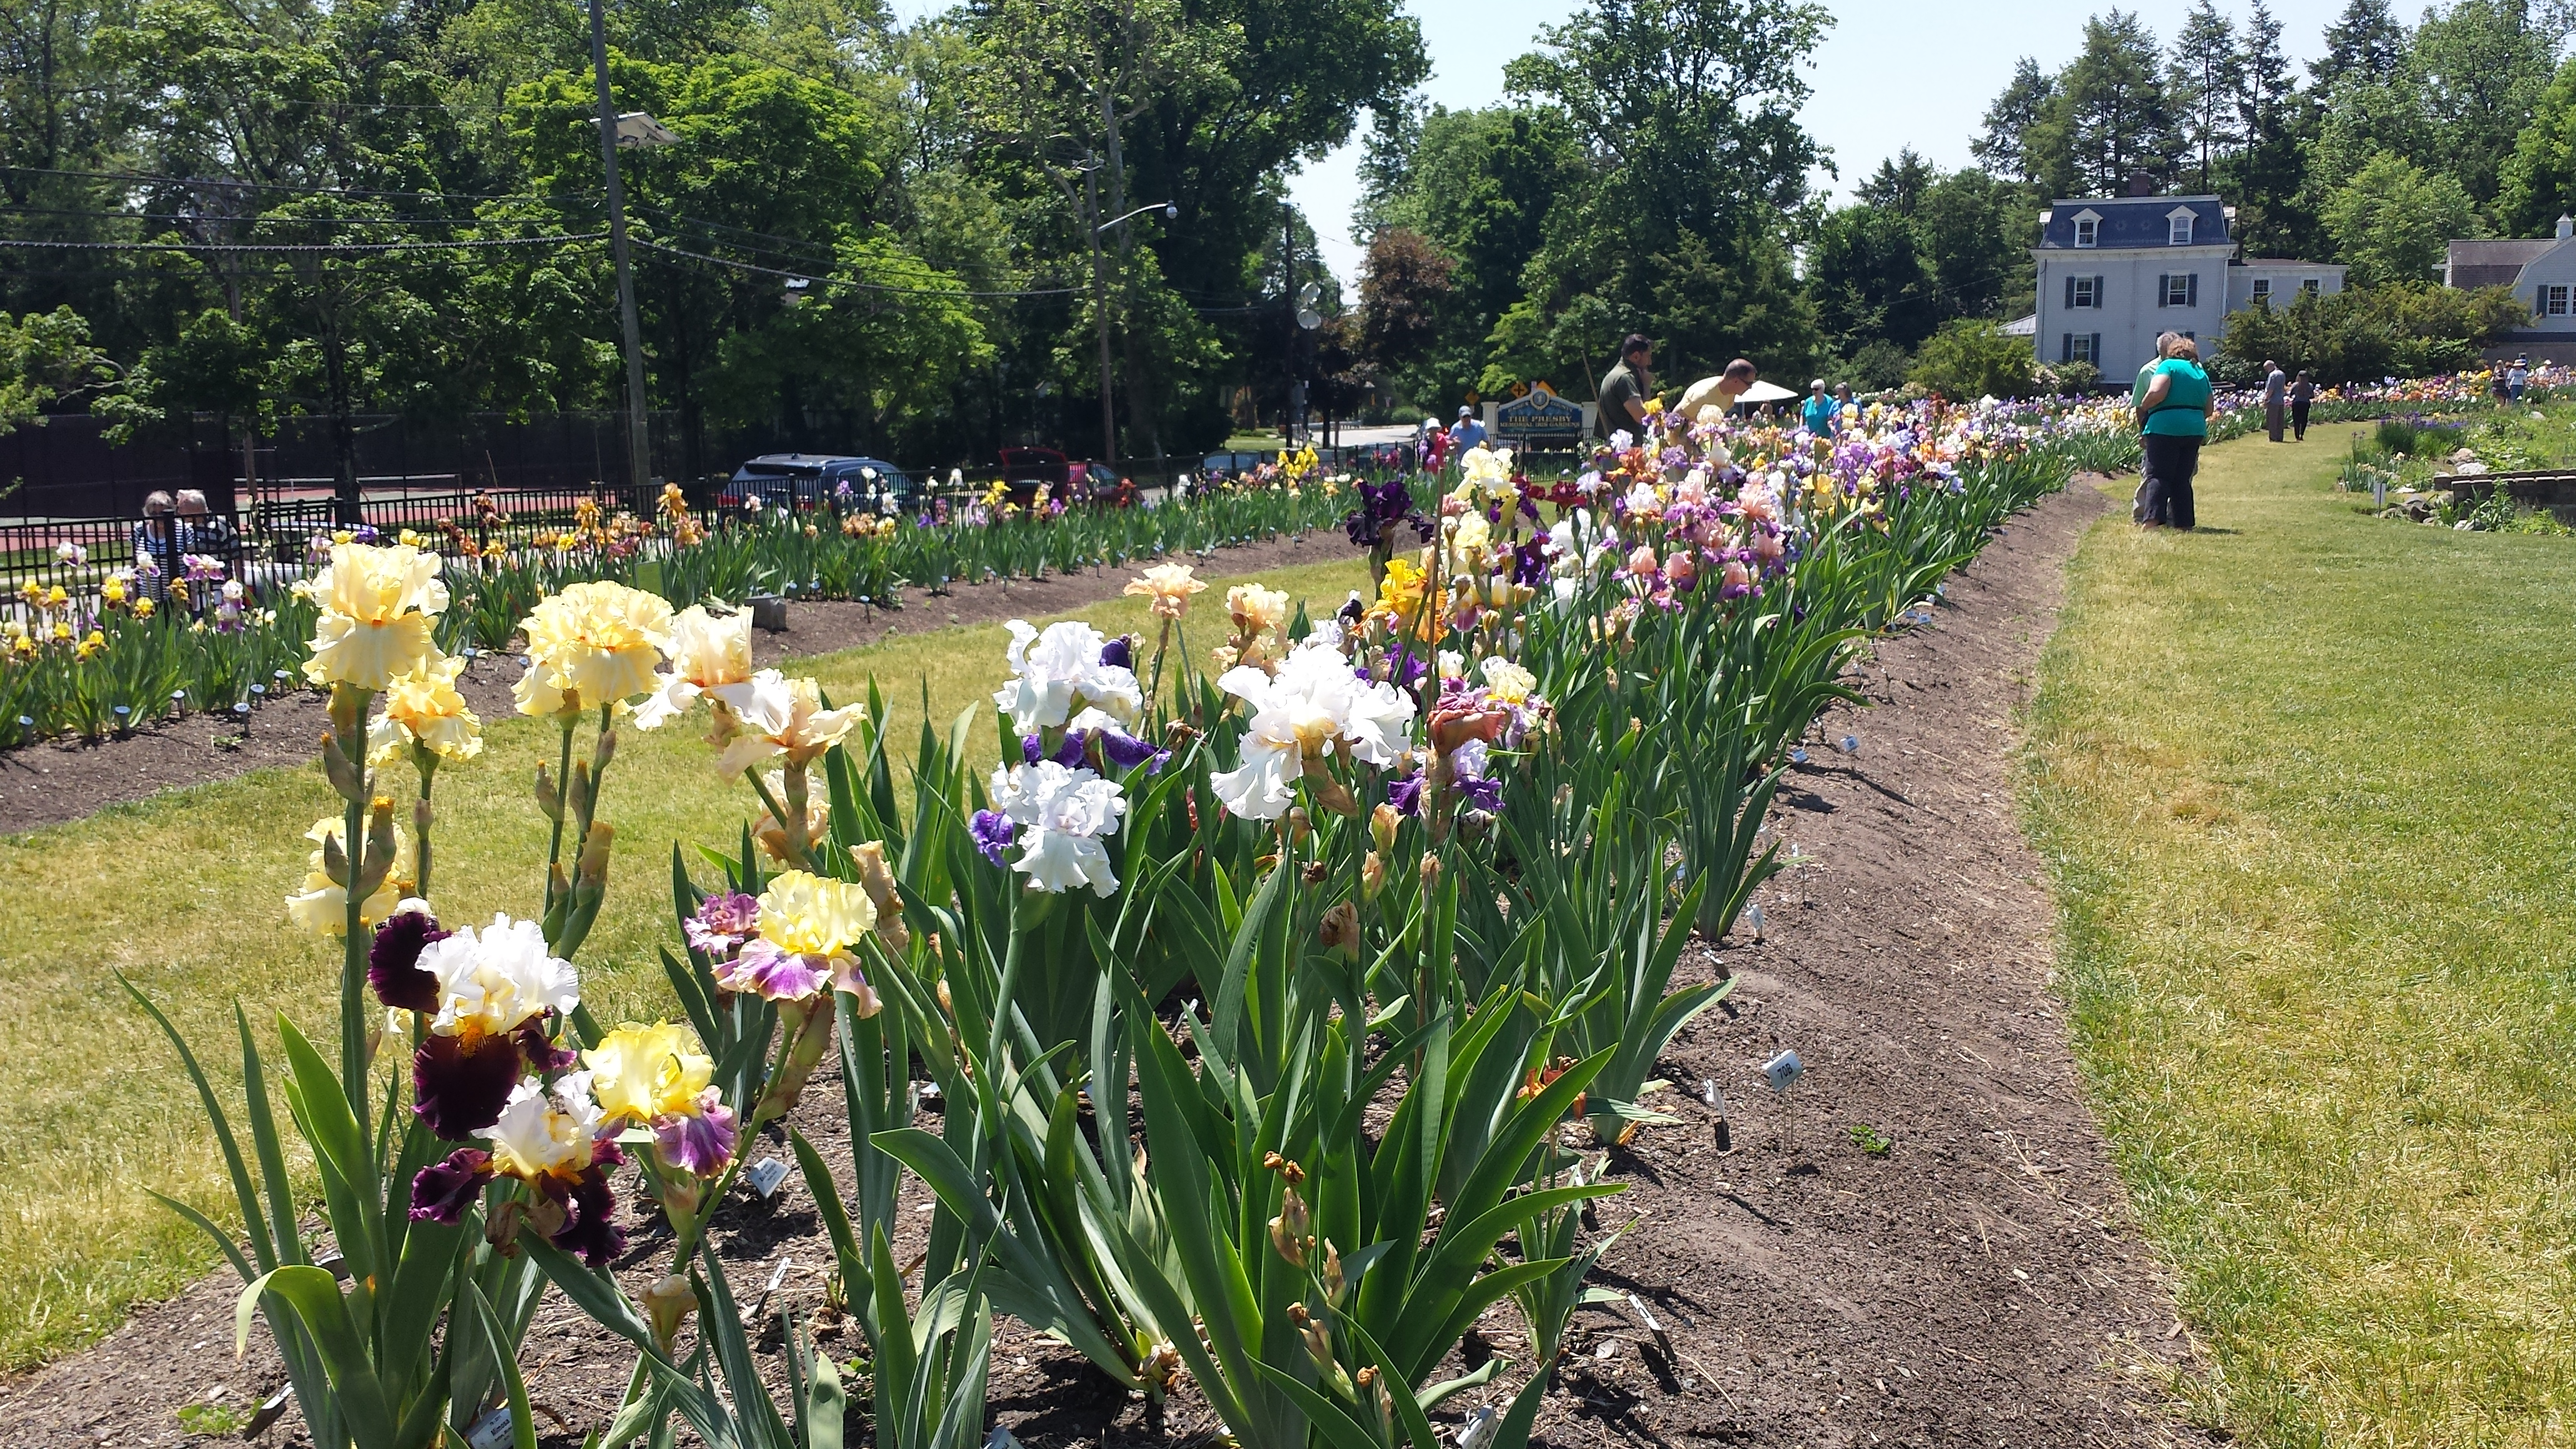 The Presby Memorial Iris Gardens Are Located On 474 Upper Mountain Ave,  Montclair, NJ 07043.